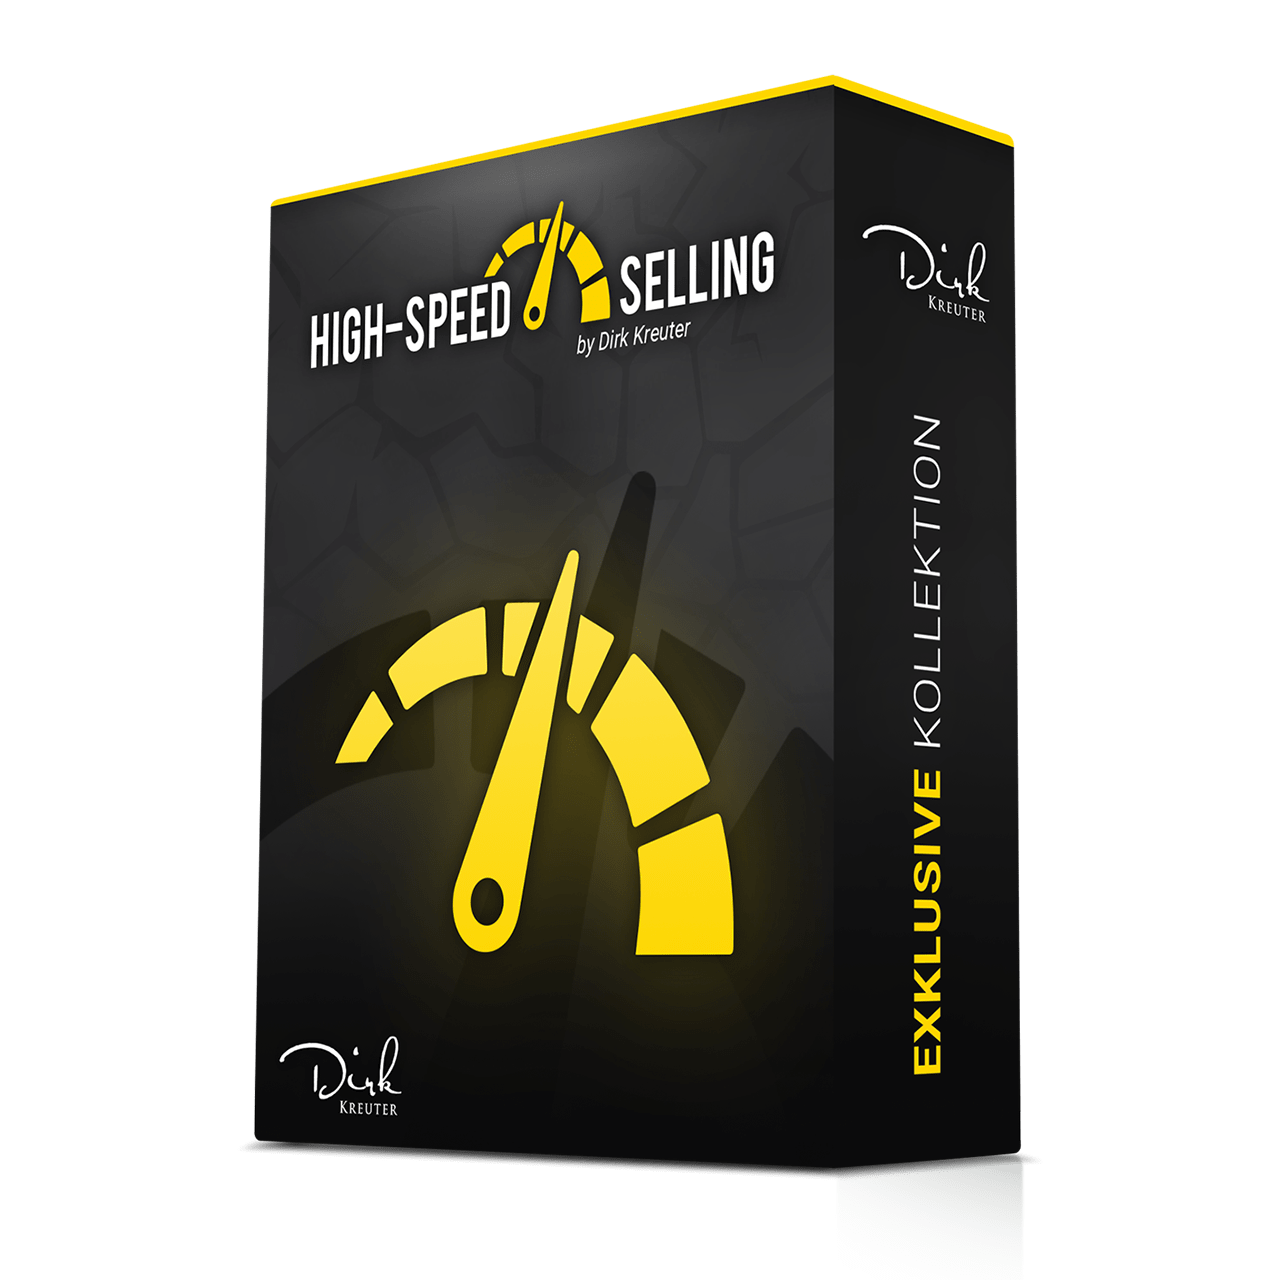 High-Speed Selling von Dirk Kreuter als Online-Kurs